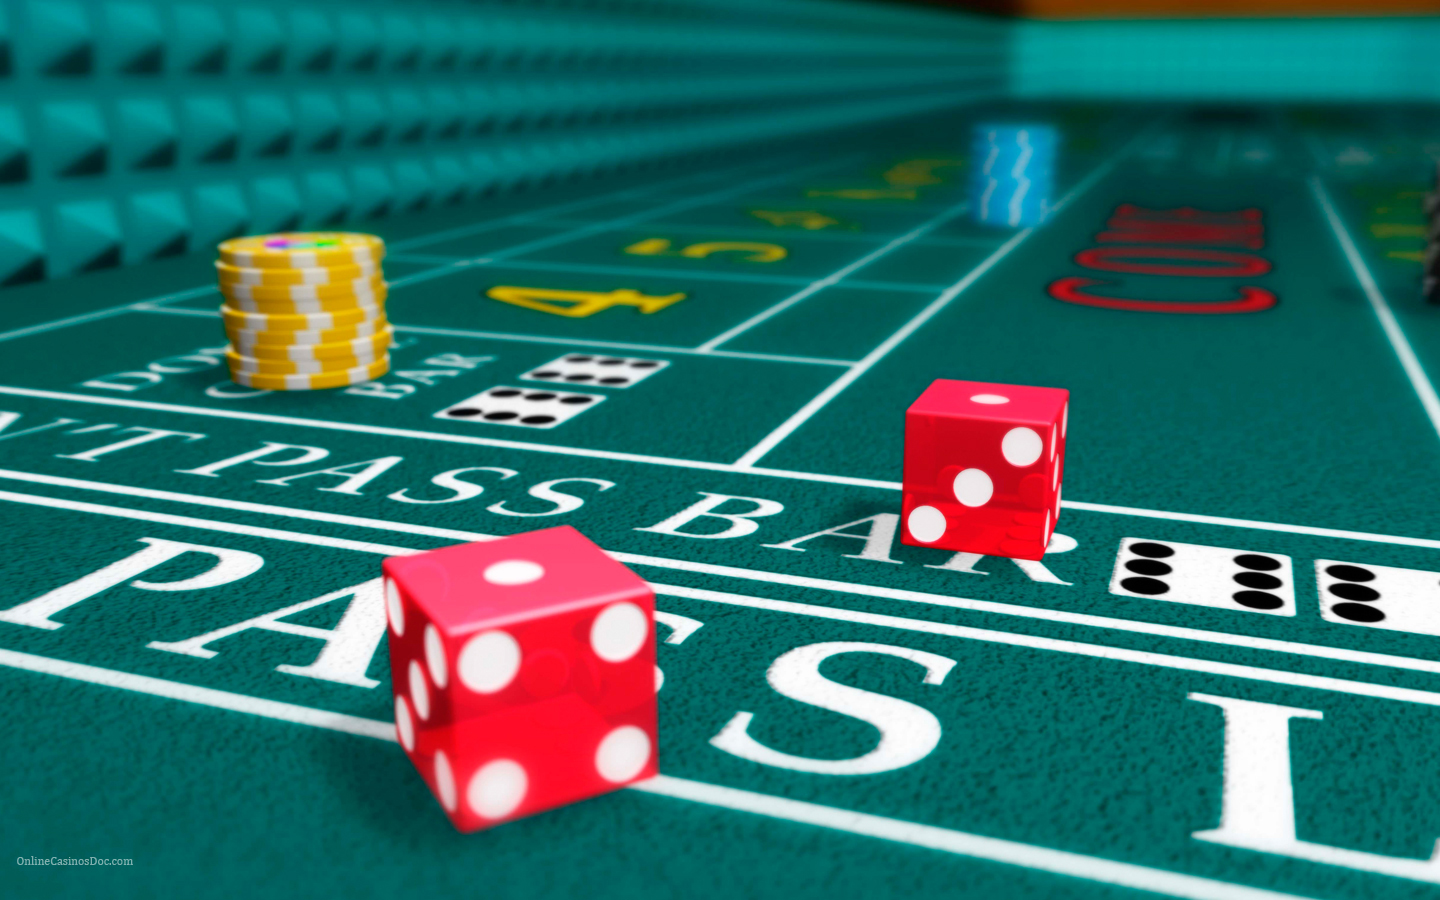 Use a verified gaming account to play the games legally on the betting platforms